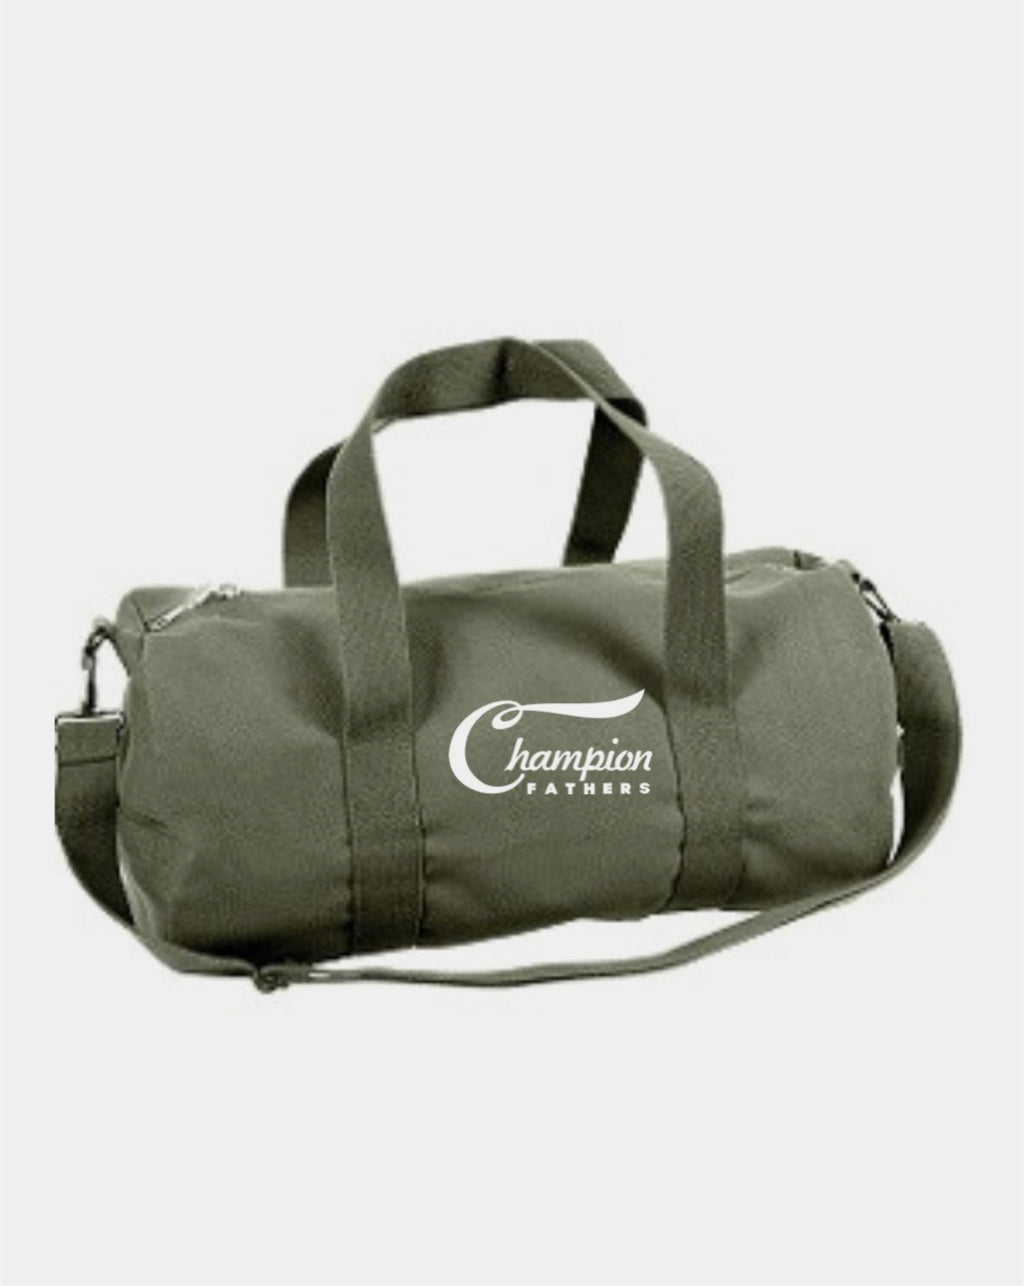 Champion Fathers Duffel Bag